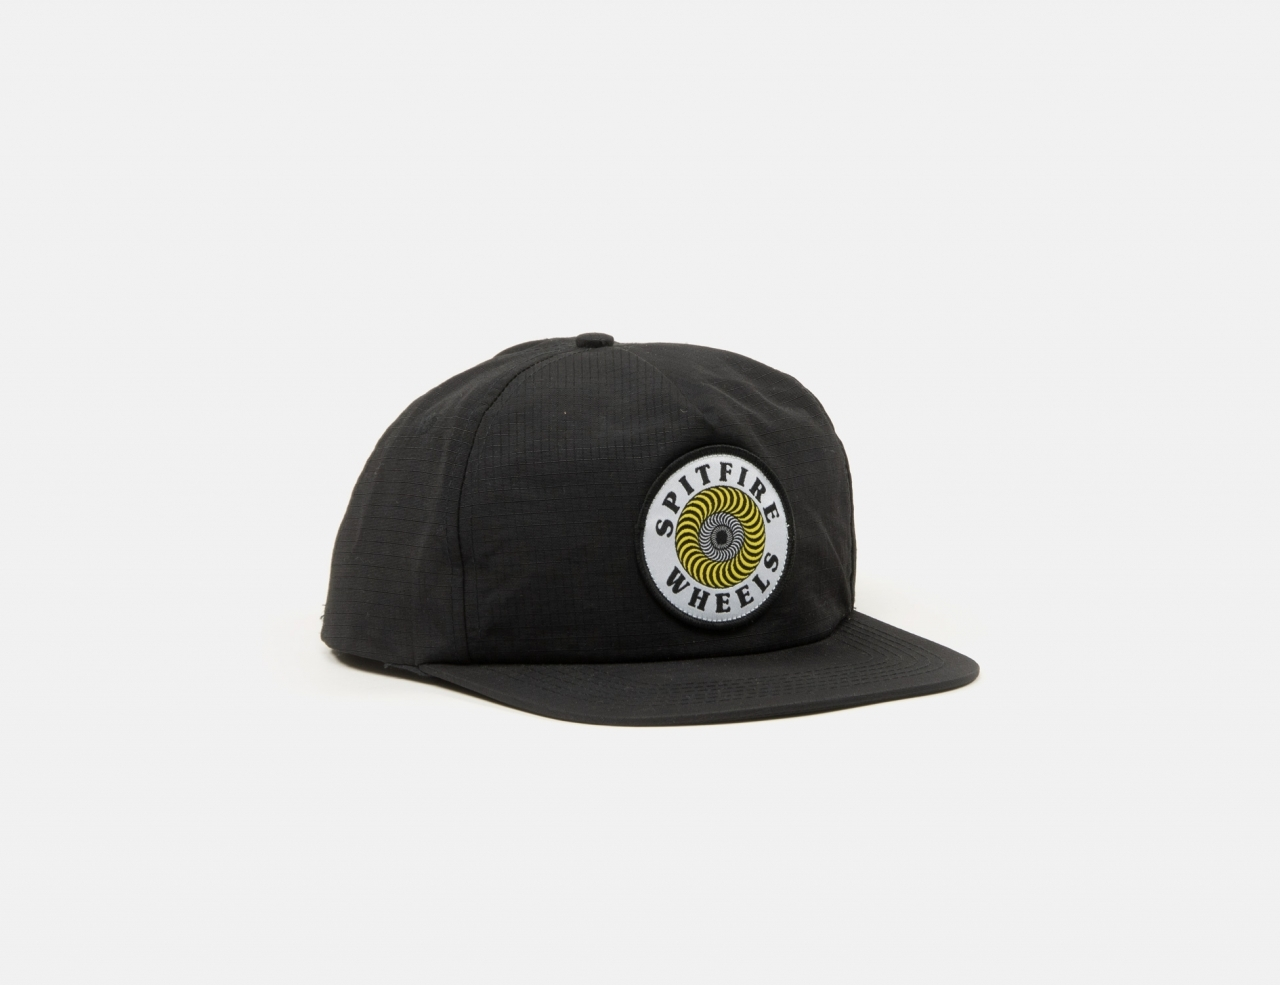 Spitfire OG Swirl Patch Snapback Cap-blackyellow